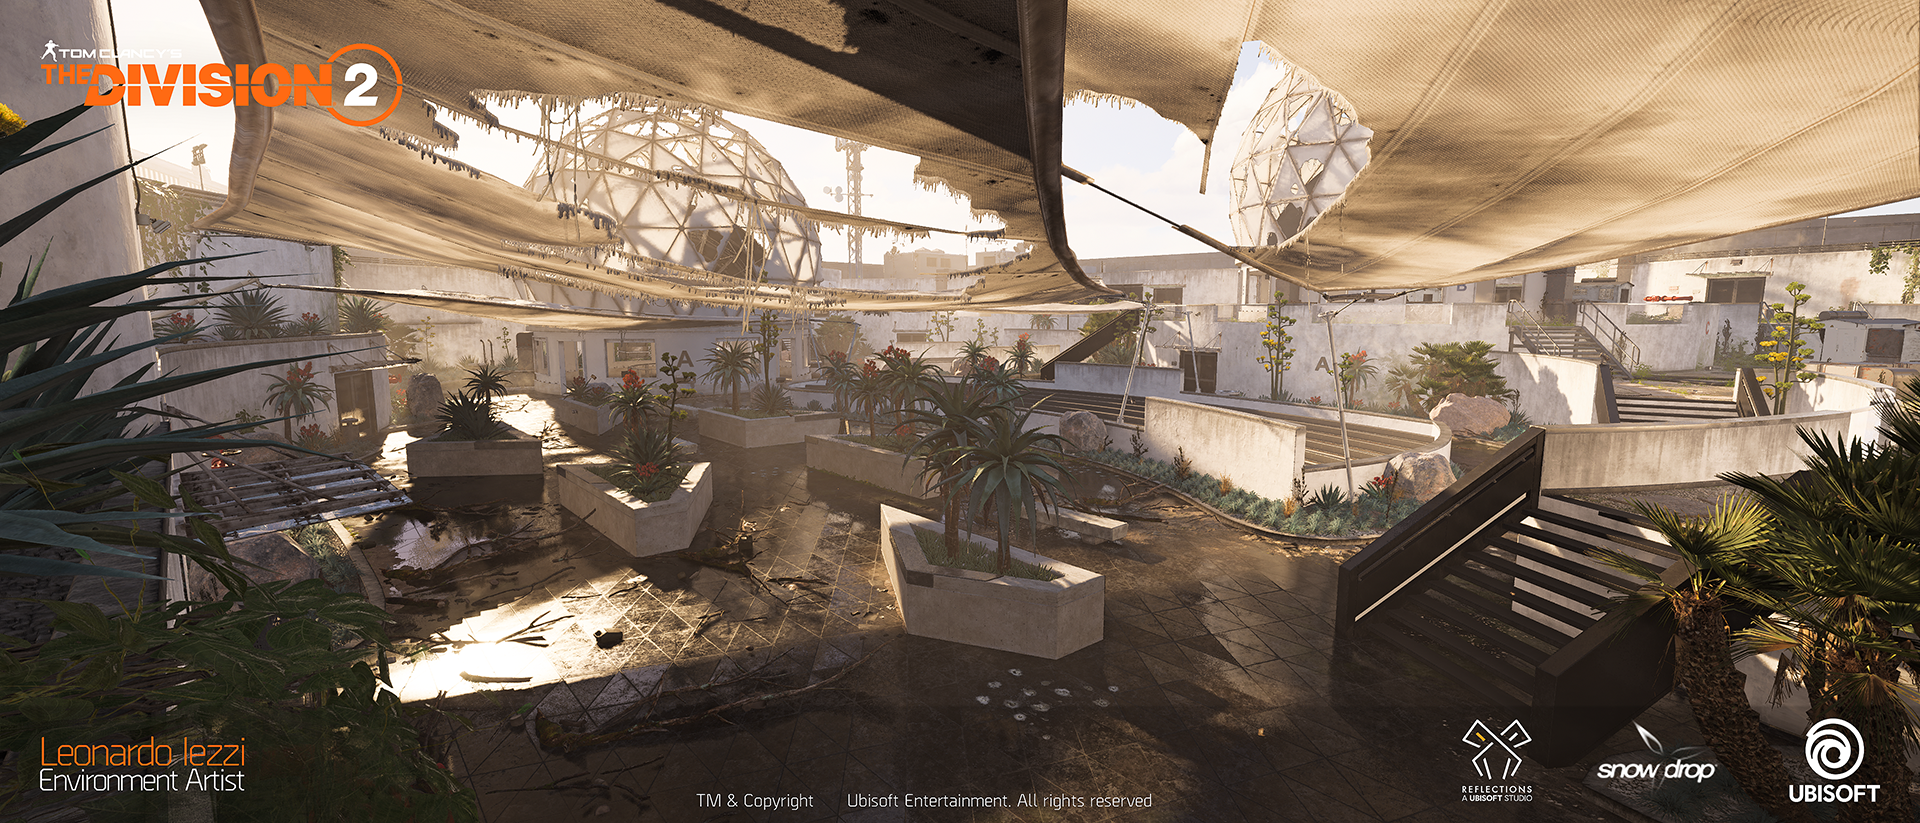 Leonardo_Iezzi_The_Division_2_Environment_Art_04_Rooftop_021_wide